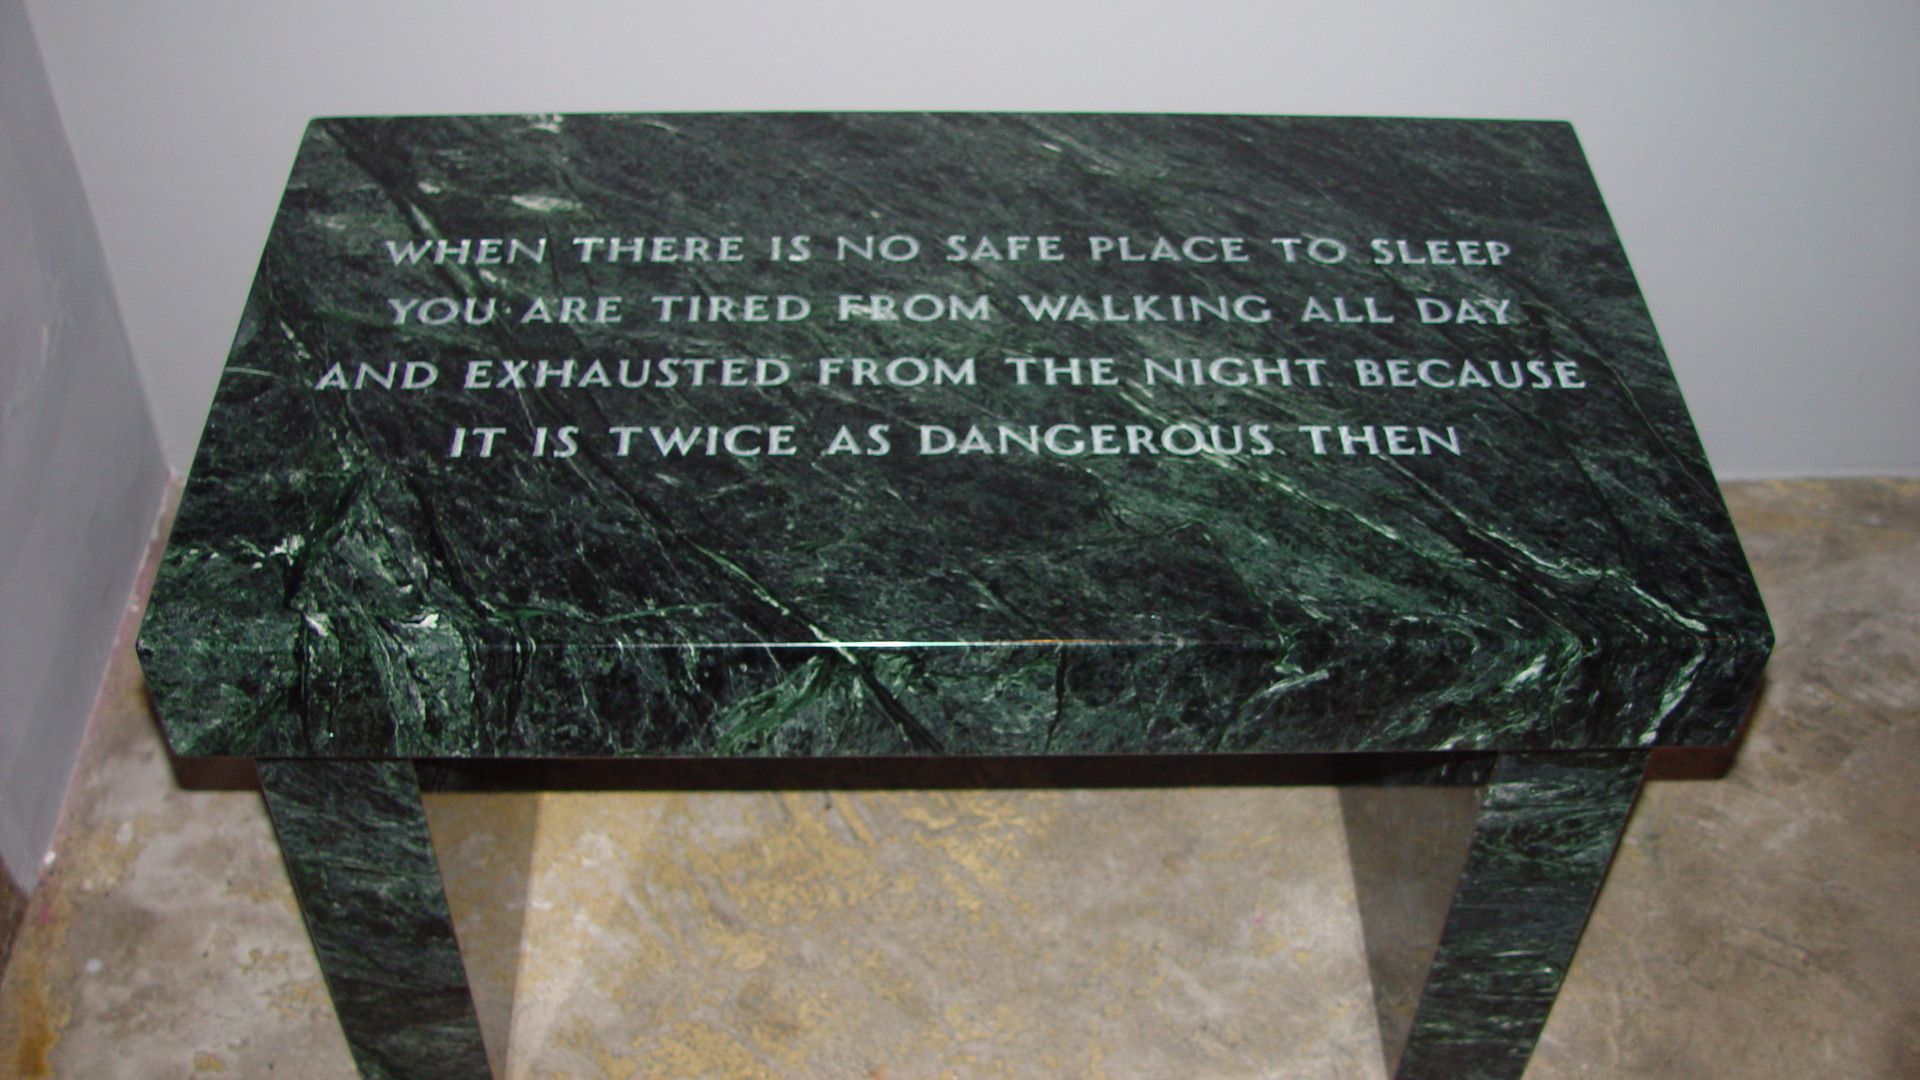 Jenny Holzer, Survival When There's No Safe Place to Sleep, 1997, verde antique marble footstool, markings inscribed under footstool Jenny Holzer, 43.2 x 41.9 x 74 cm